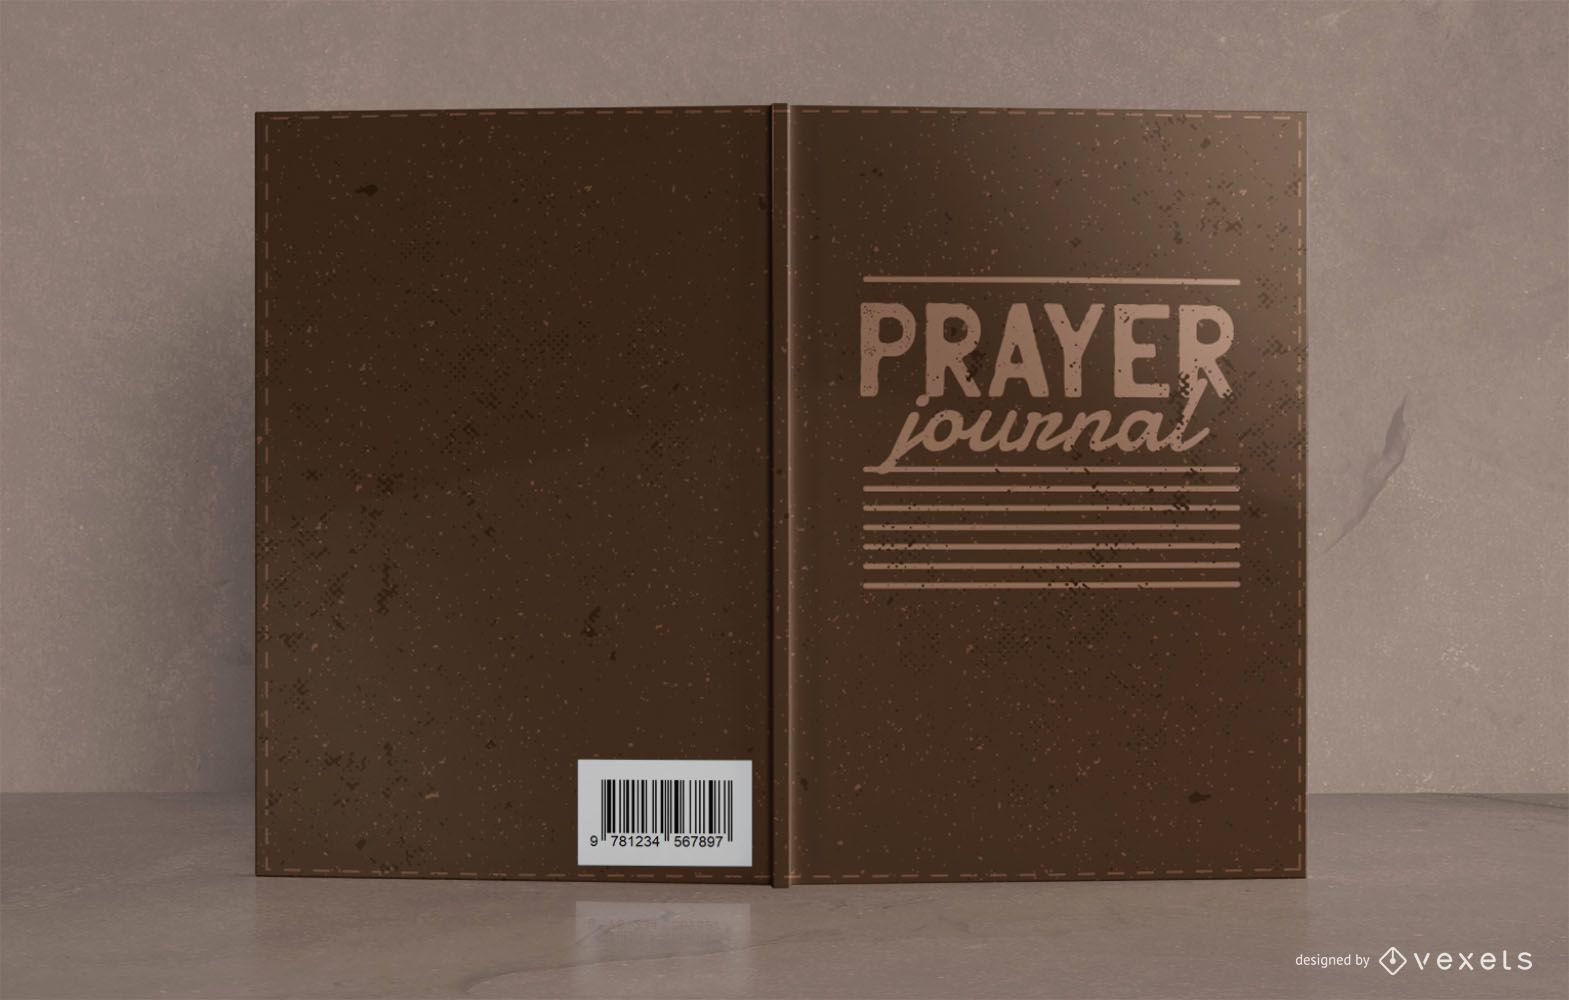 Leather Style Prayer Journal Book Cover Design